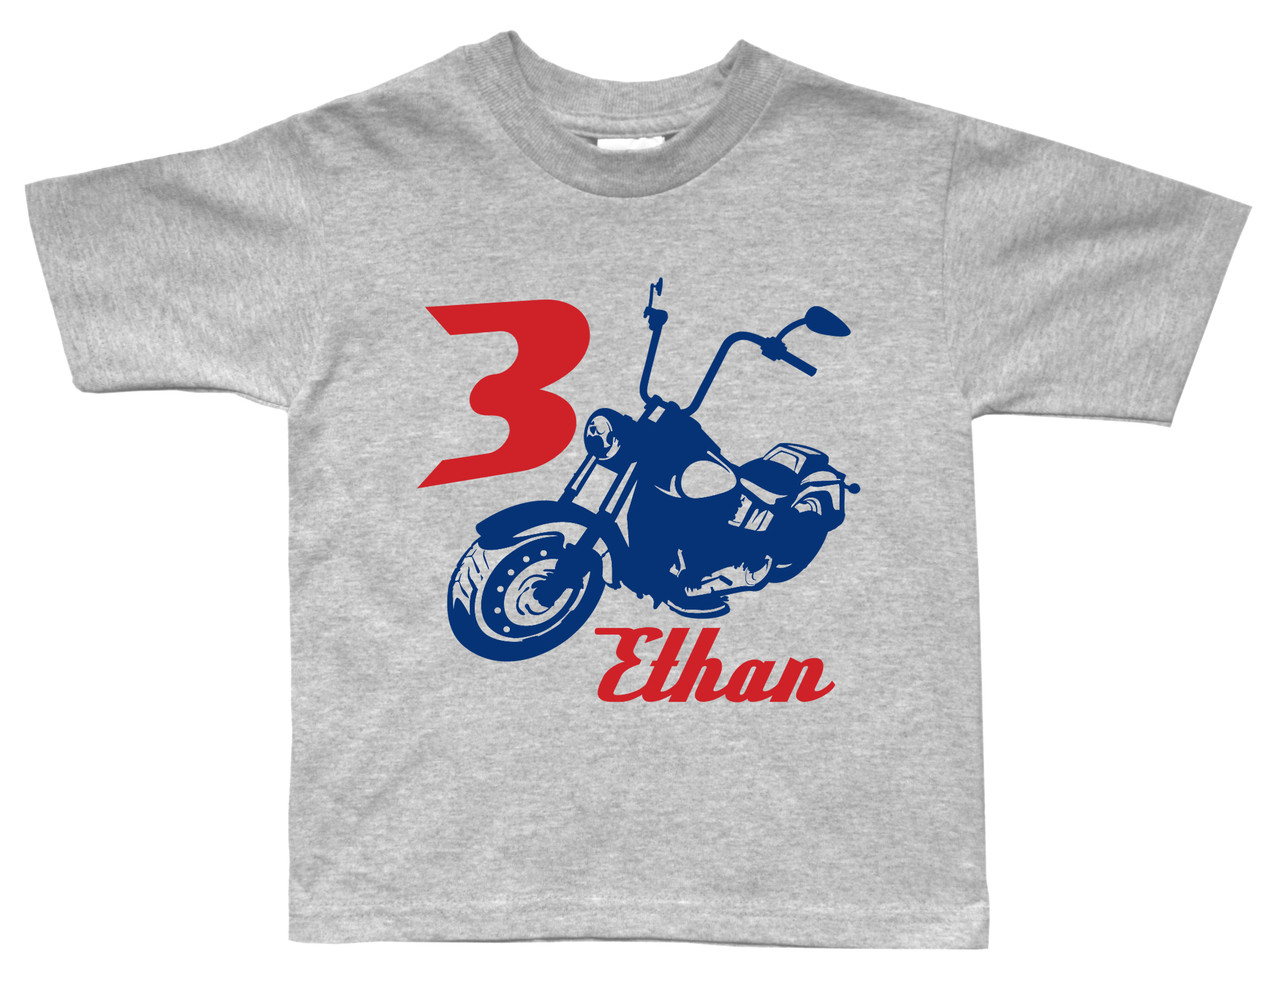 Chopper motocycle birthday shirt on grey short sleeve